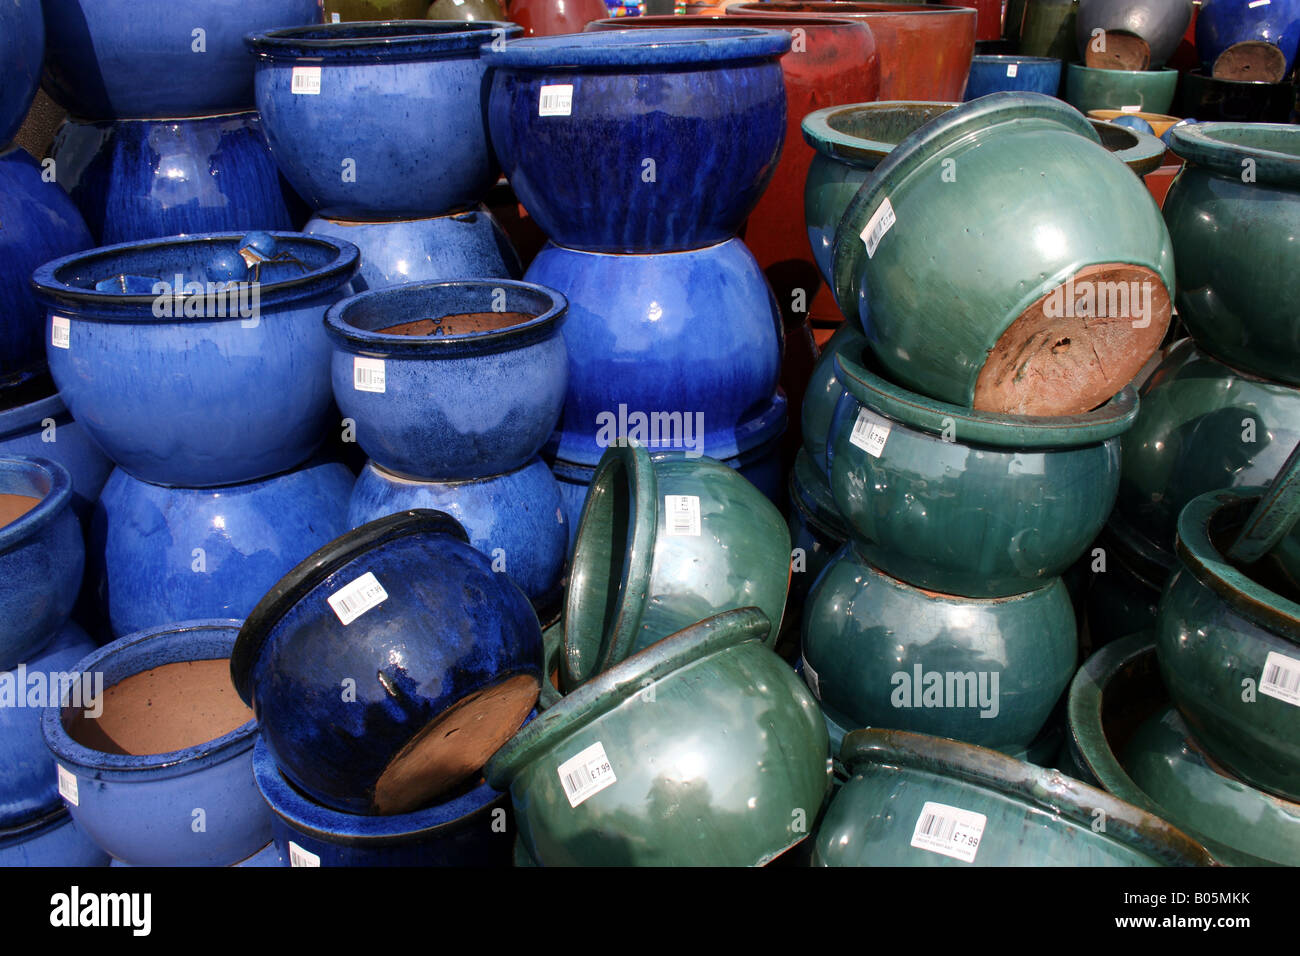 china blue and jade green glazed ceramic garden flower pots stock photo 17336359 alamy. Black Bedroom Furniture Sets. Home Design Ideas